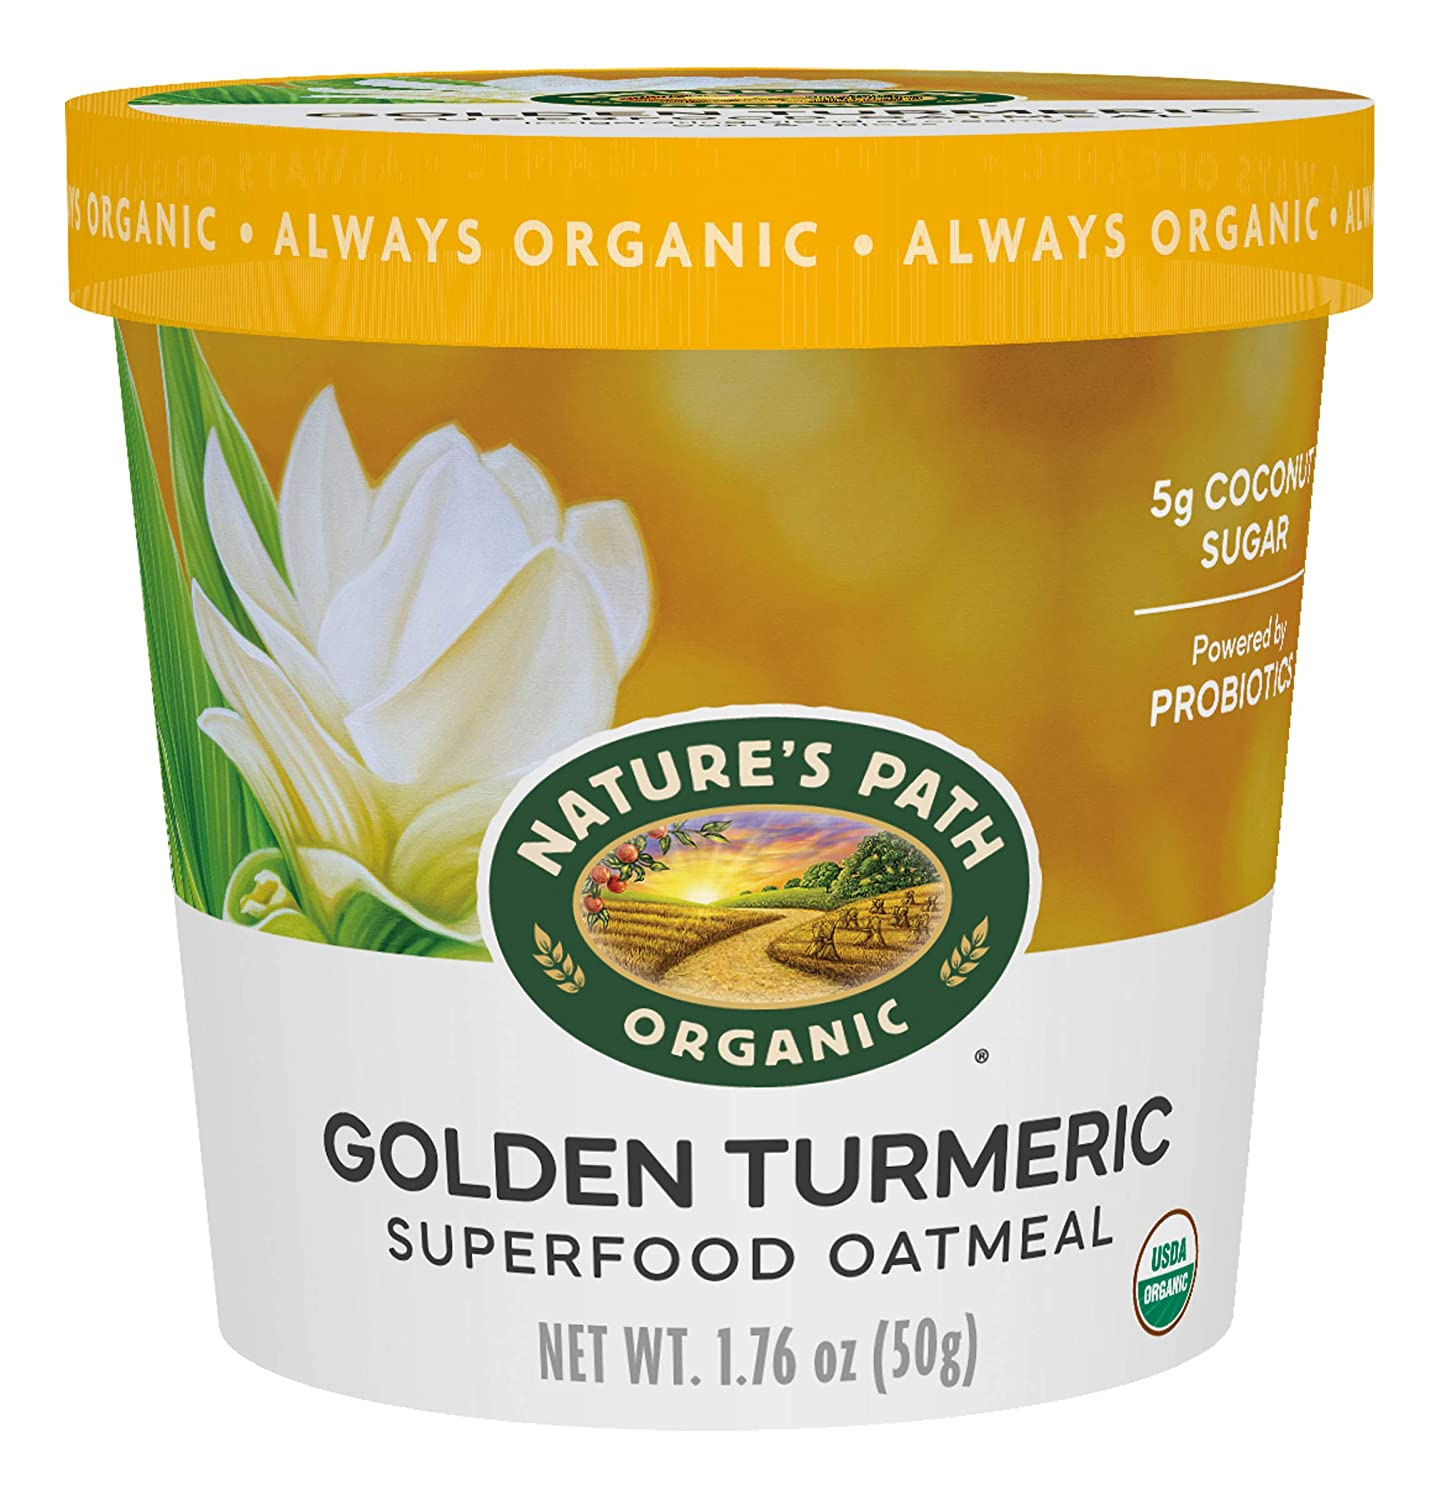 Nature's Path Organic Golden Turmeric Oatmeal Cup 1.76oz, 6Count